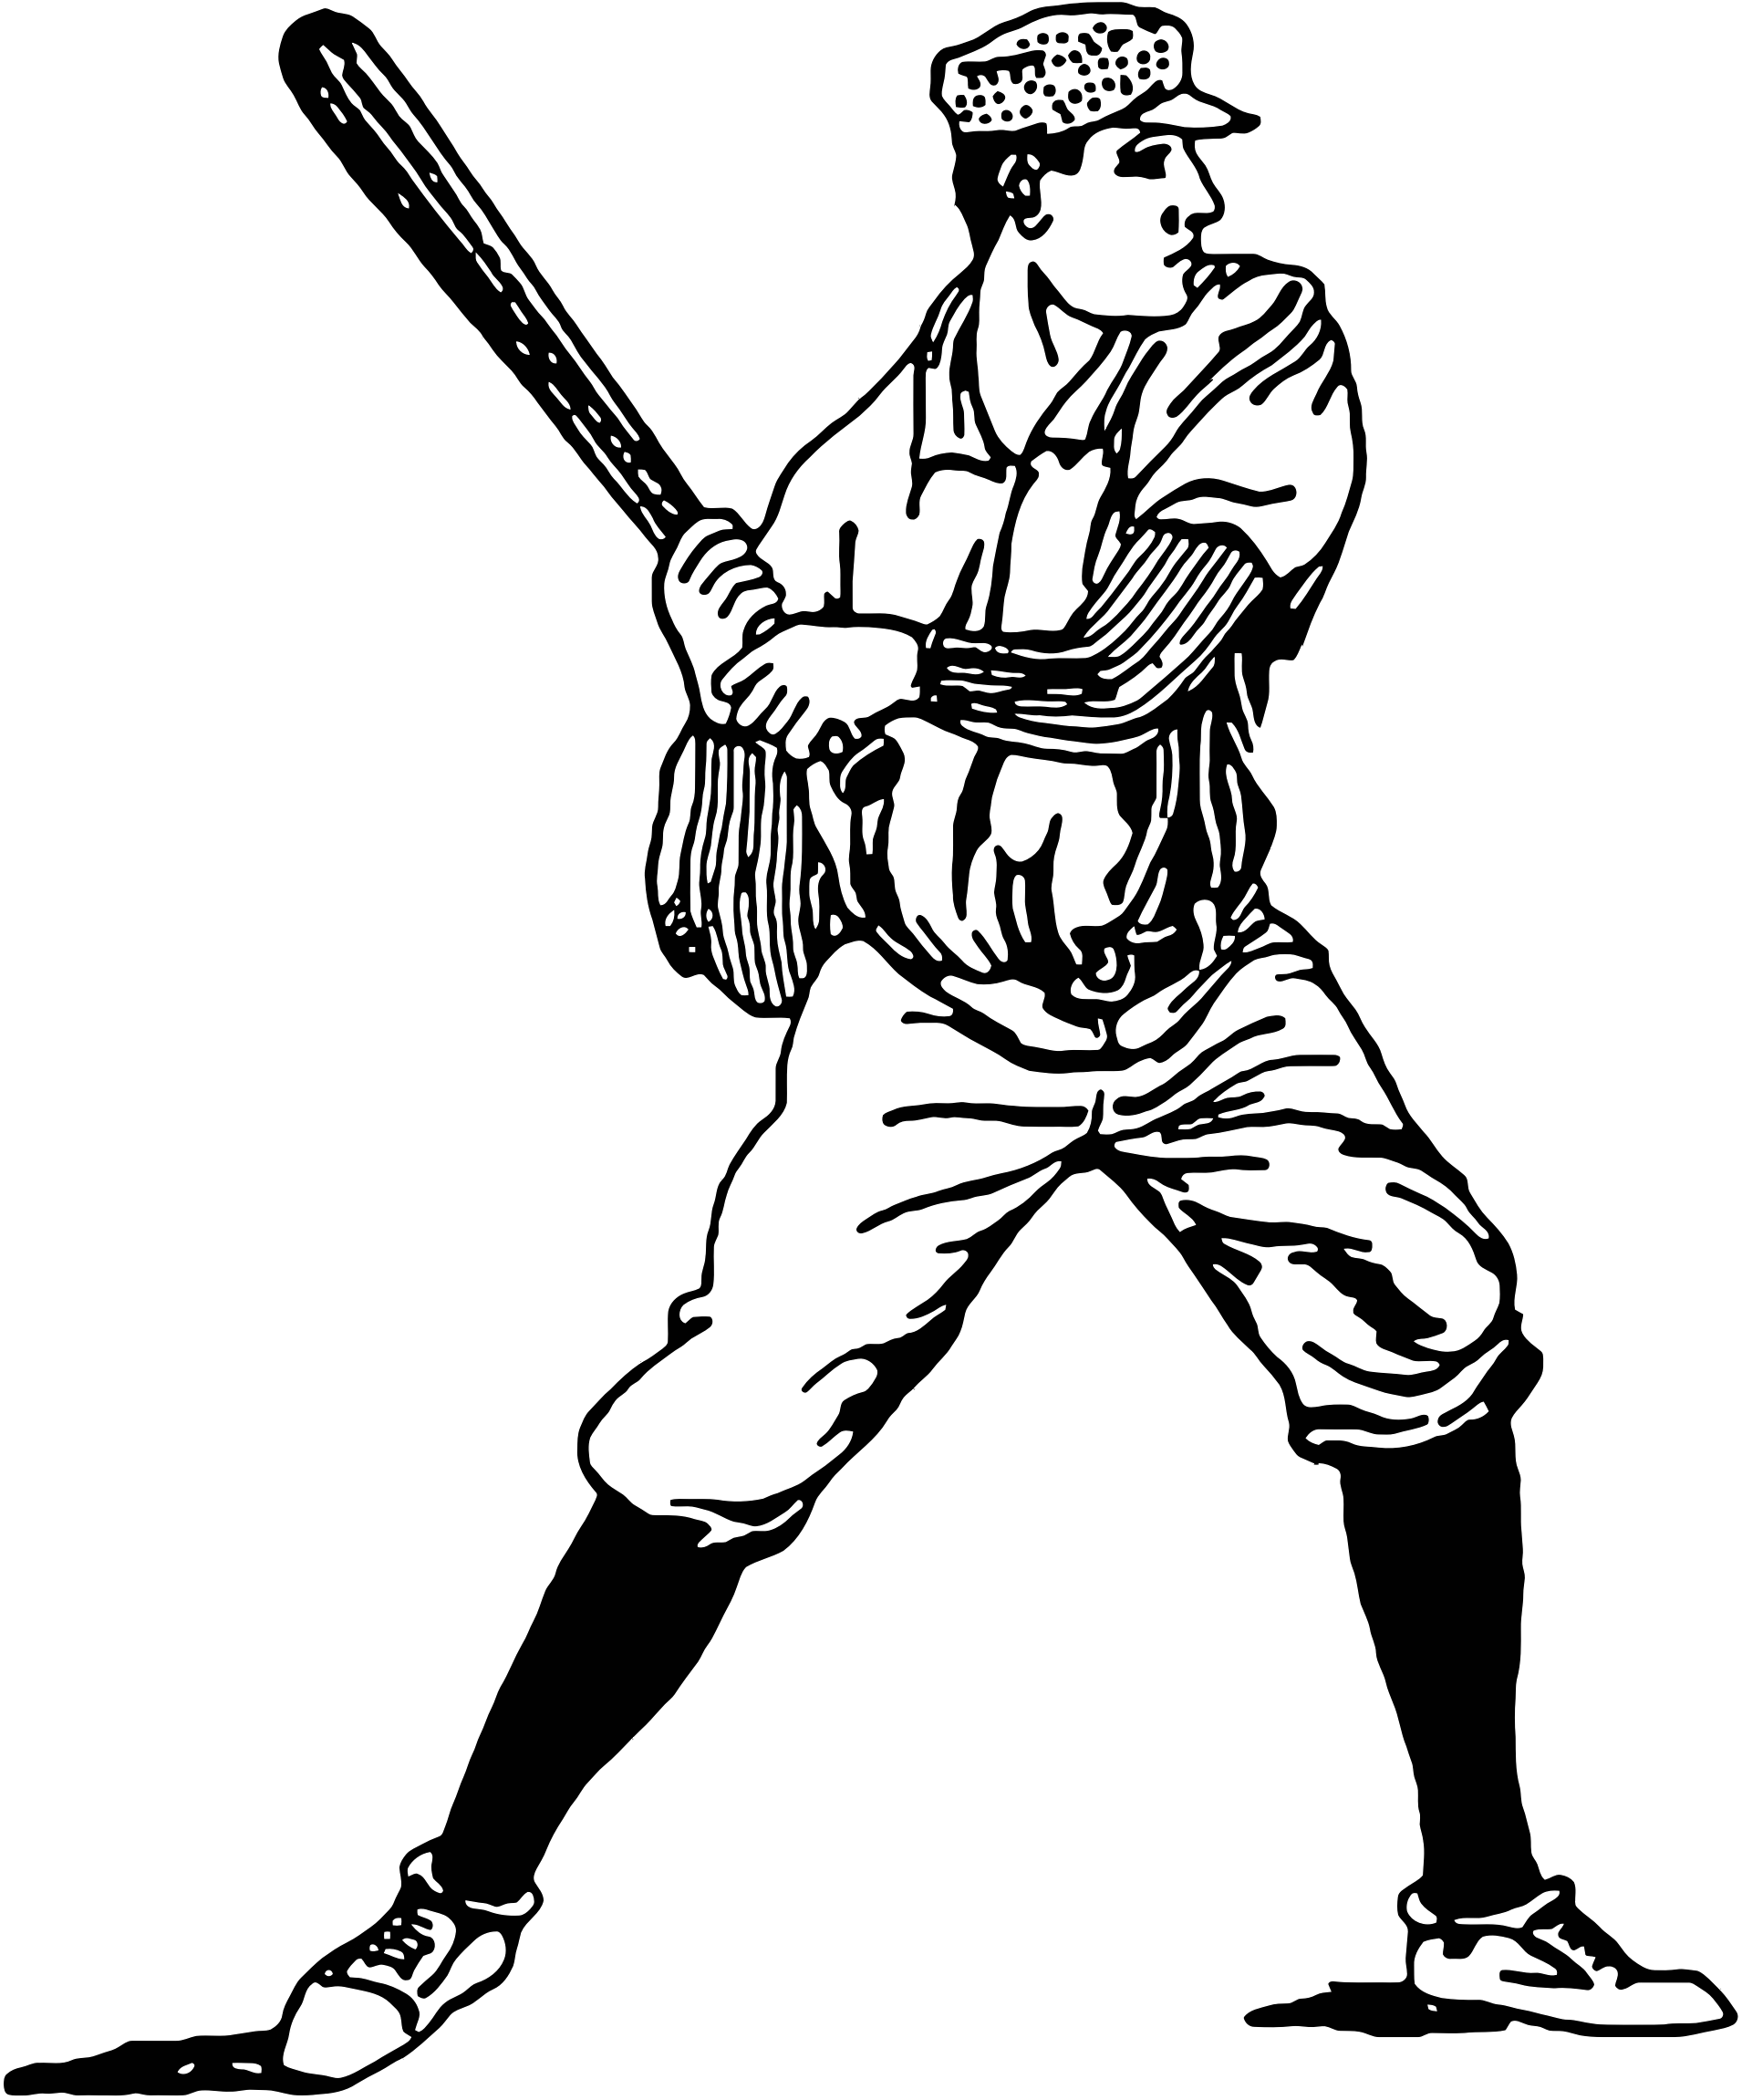 Rustic baseball clipart clip black and white Clipart - Vintage Baseball Player Illustration clip black and white